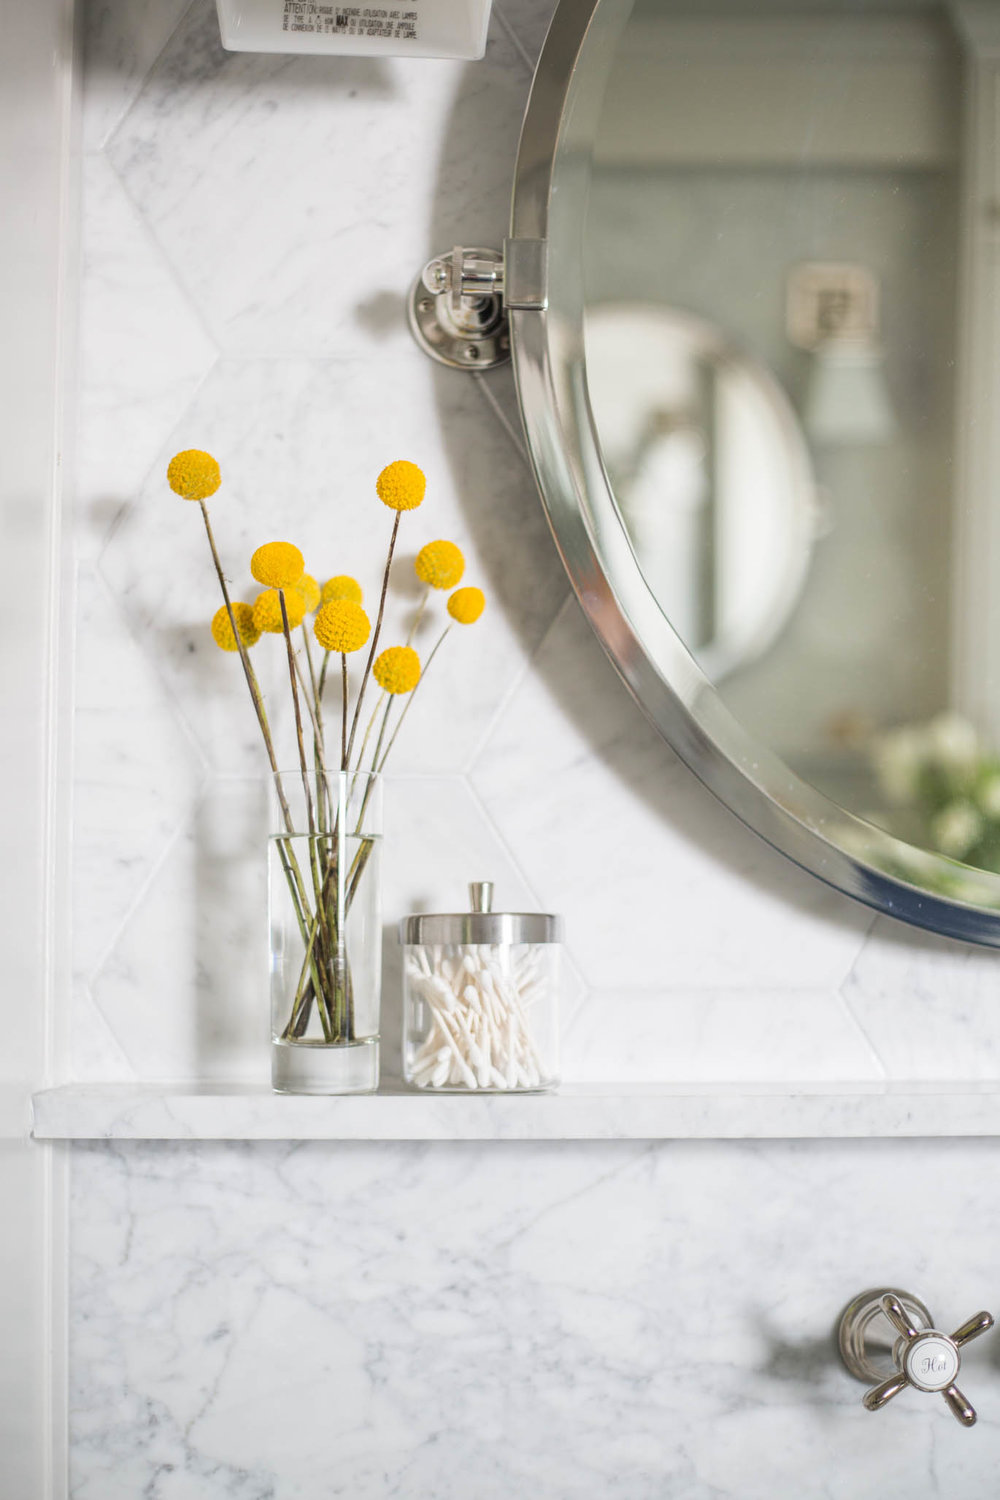 Perfect Special details create that boutique hotel bathroom experience